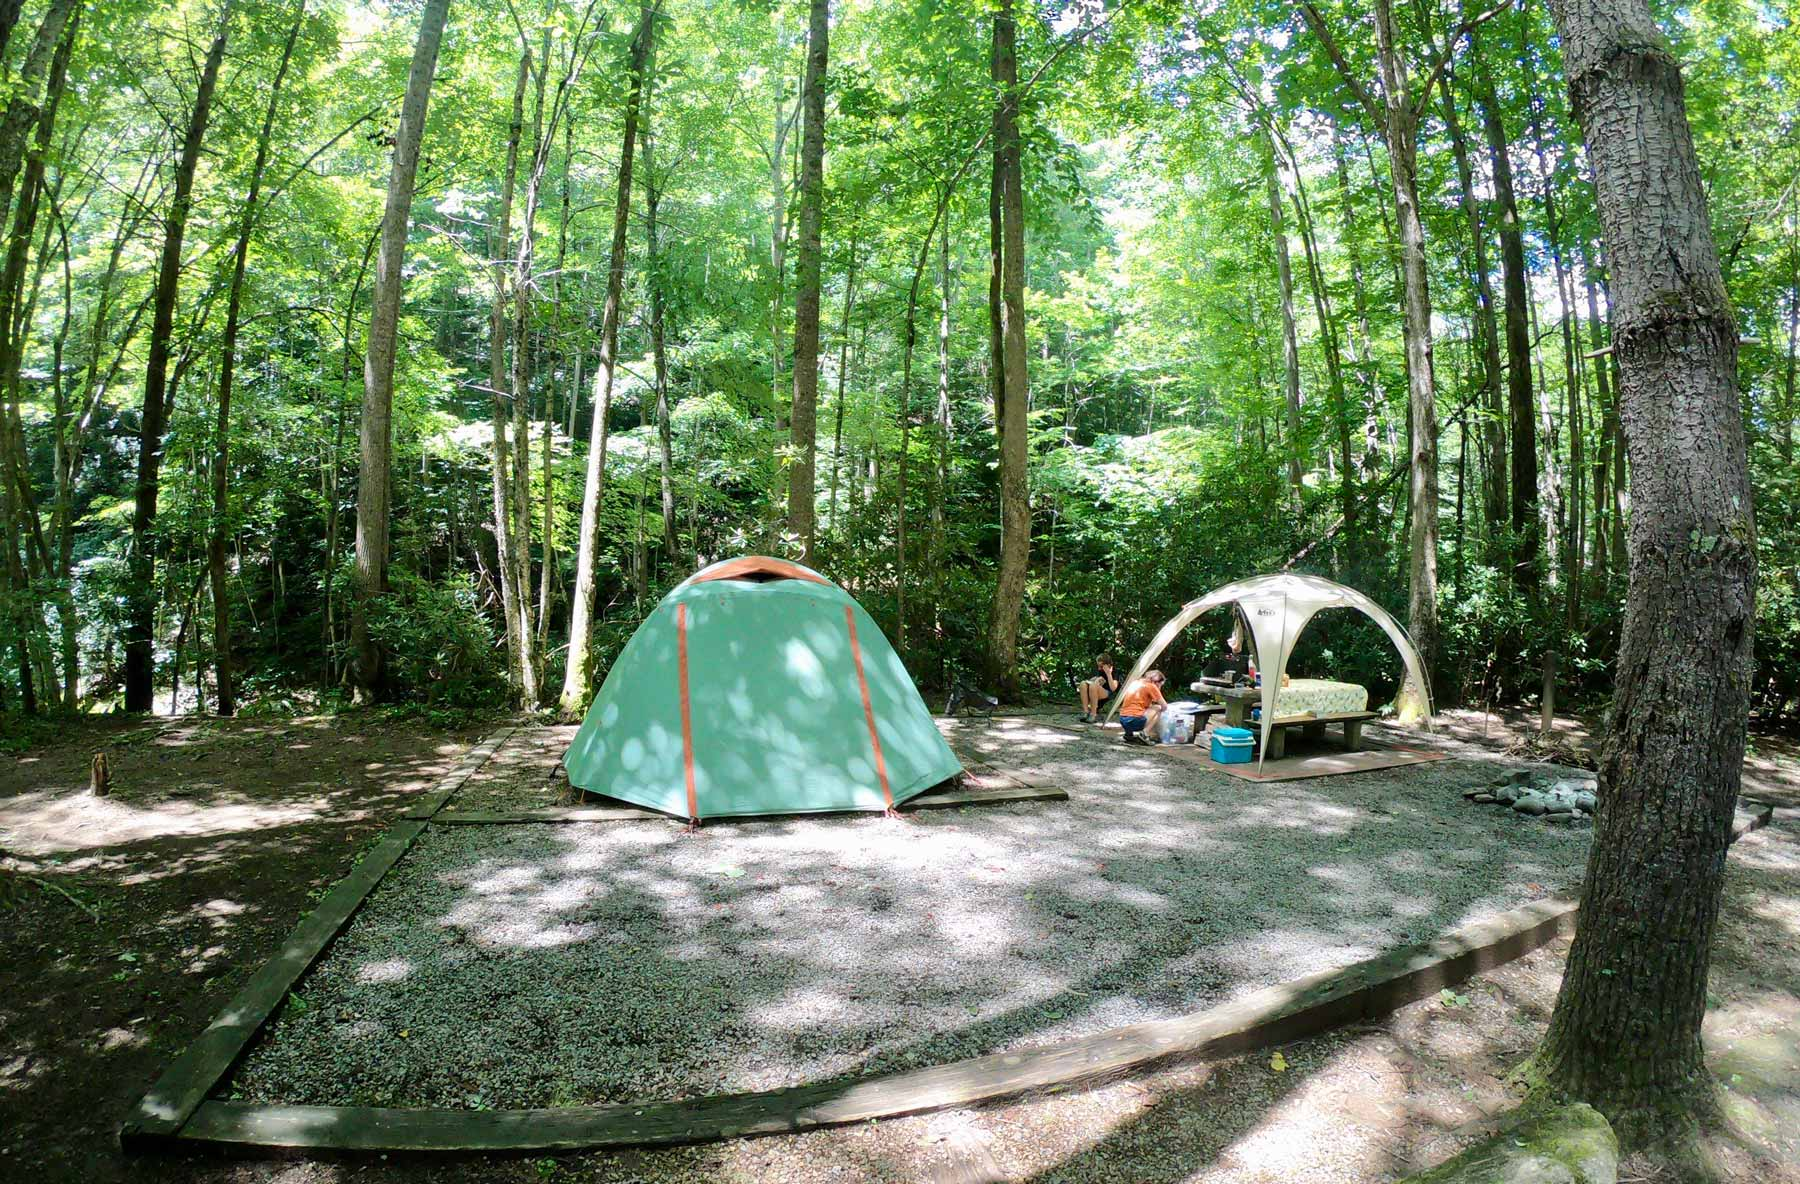 Tent camping in Roan Mountain State Park, Tennessee